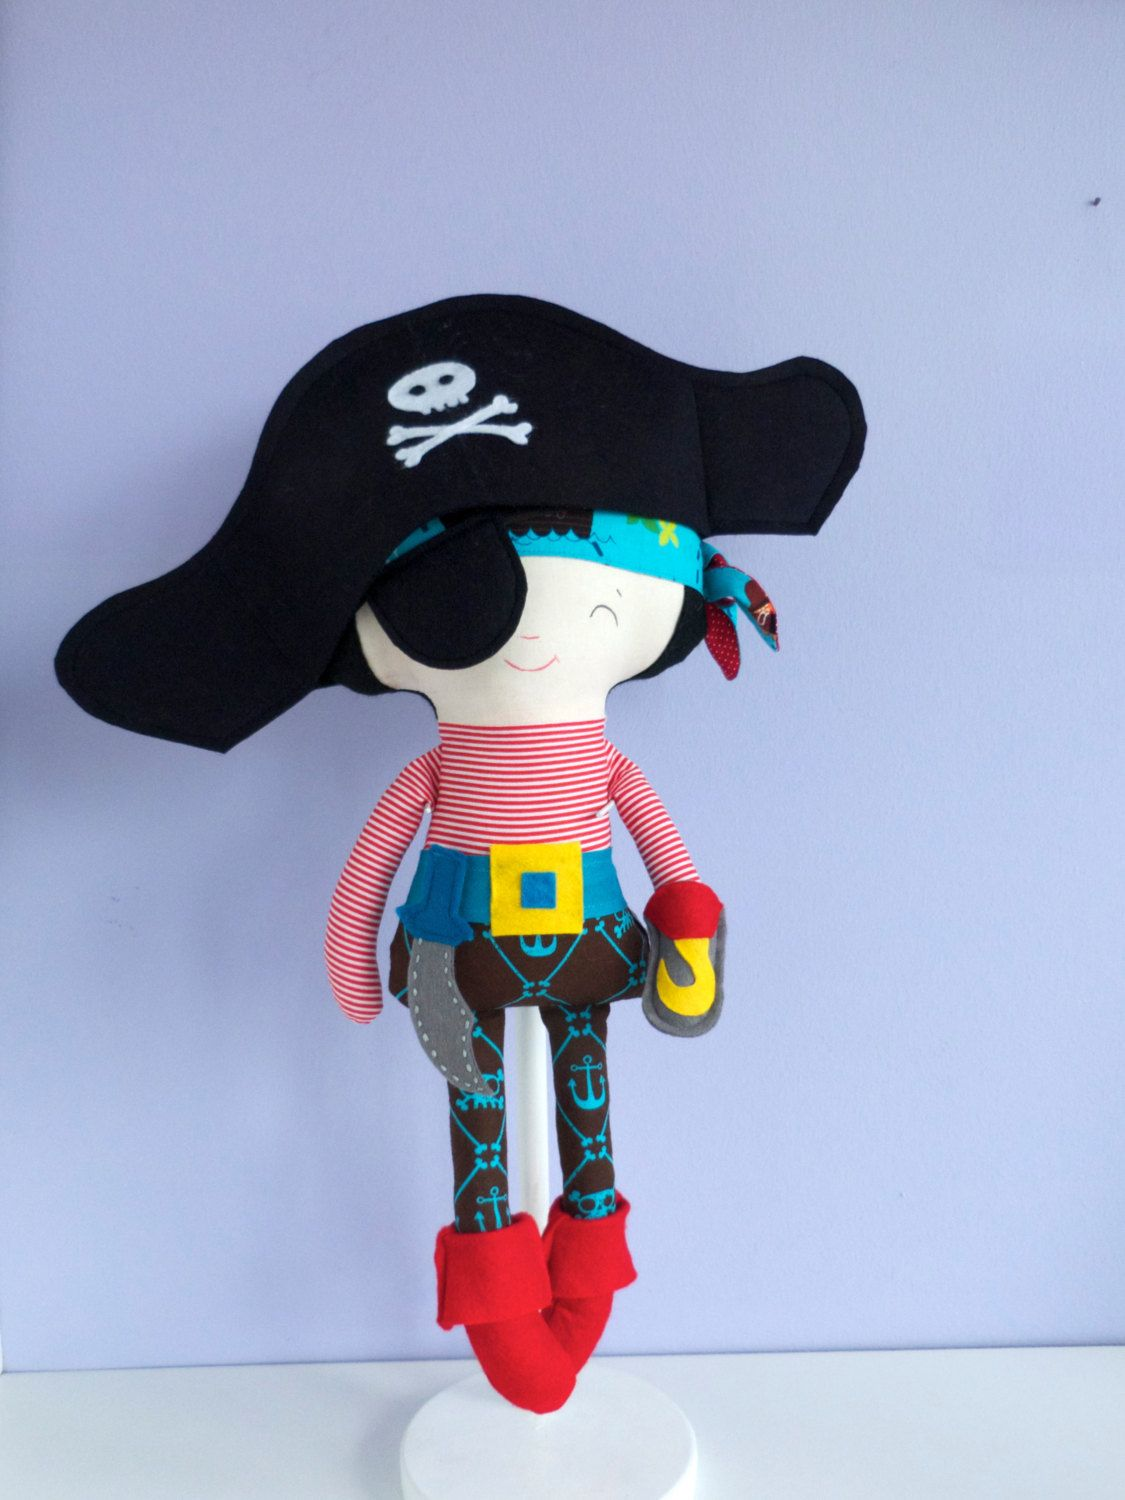 Pirate handmade fabric doll by Owlsandco on Etsy https://www.etsy.com/listing/164024395/pirate-handmade-fabric-doll